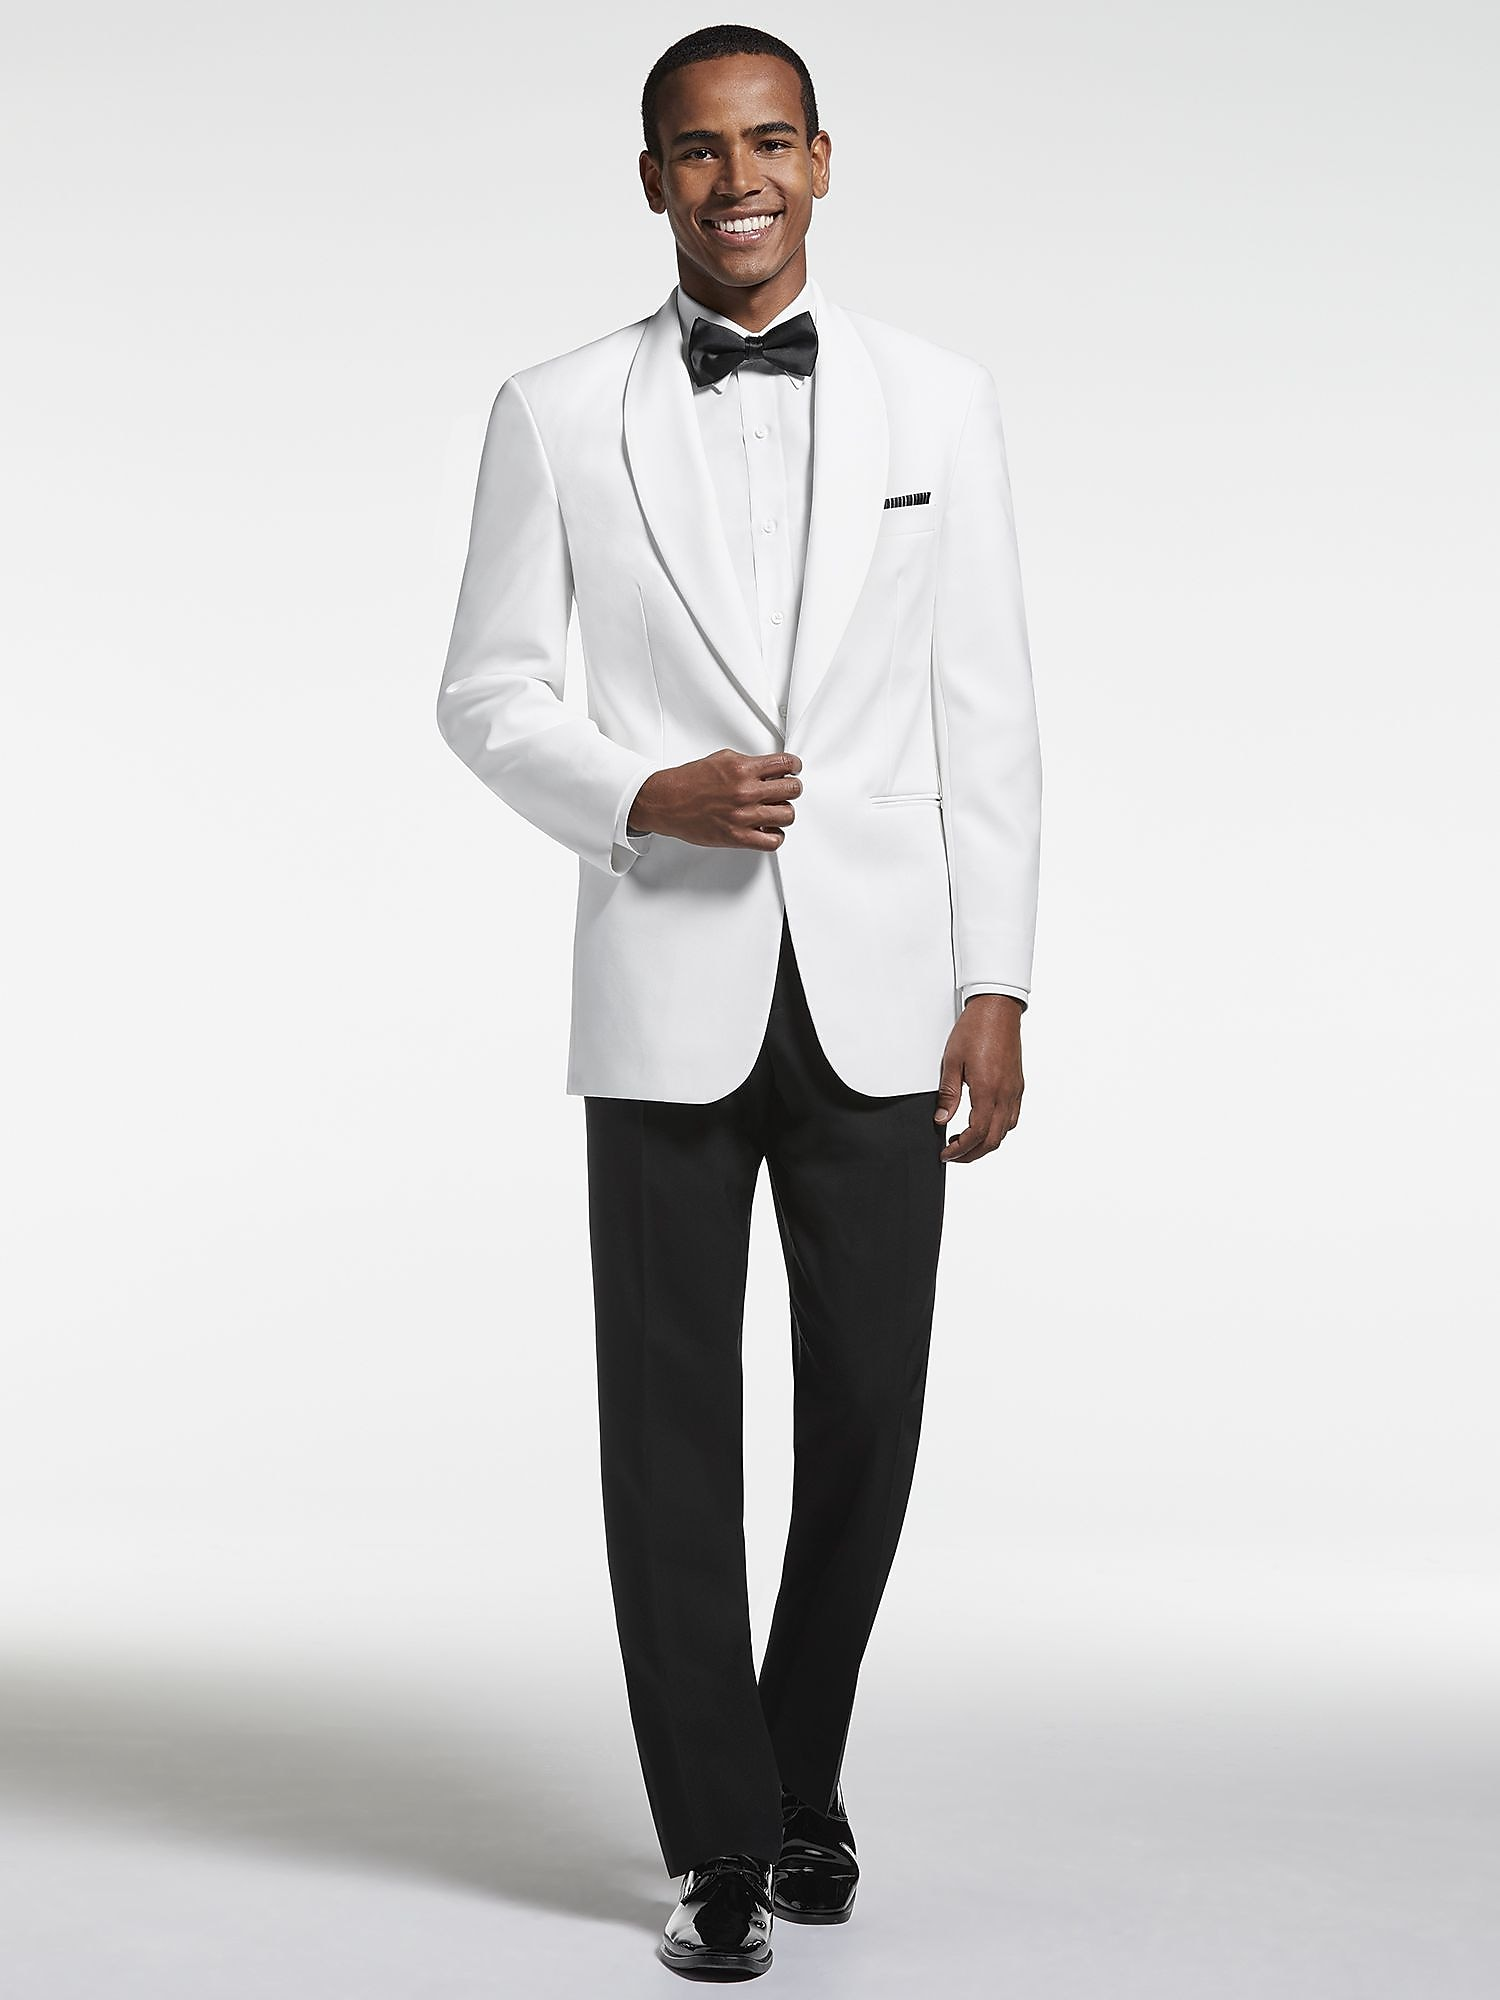 White Dinner Jacket, Shawl Lapel Tuxedo | Tuxedo Rental | Men\'s ...